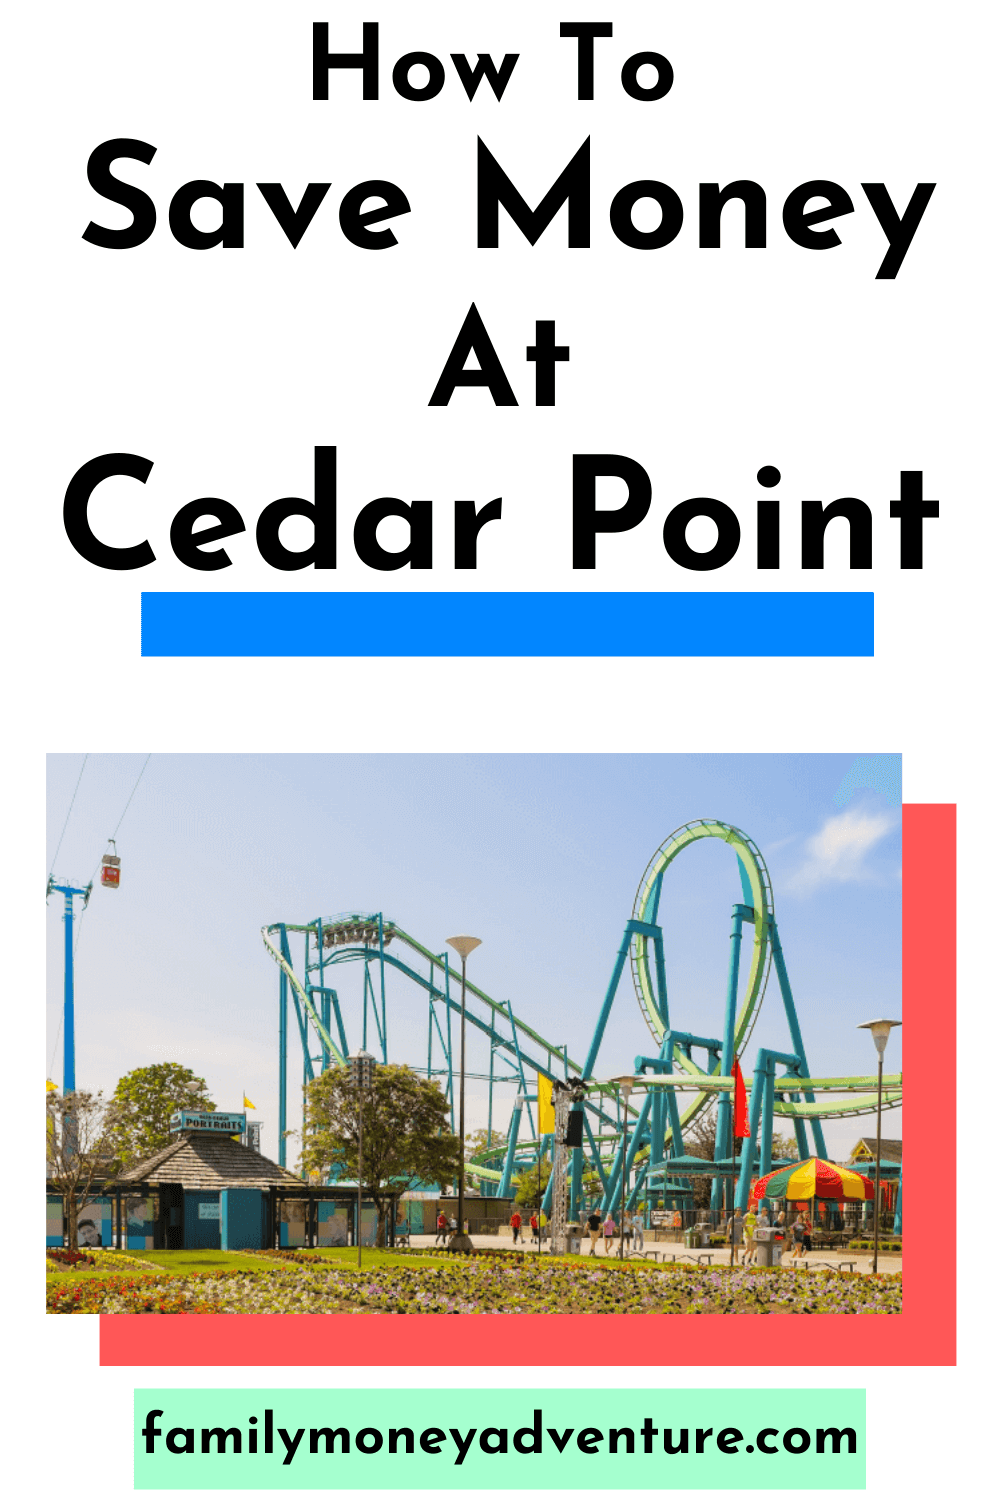 How to Save Money at Cedar Point